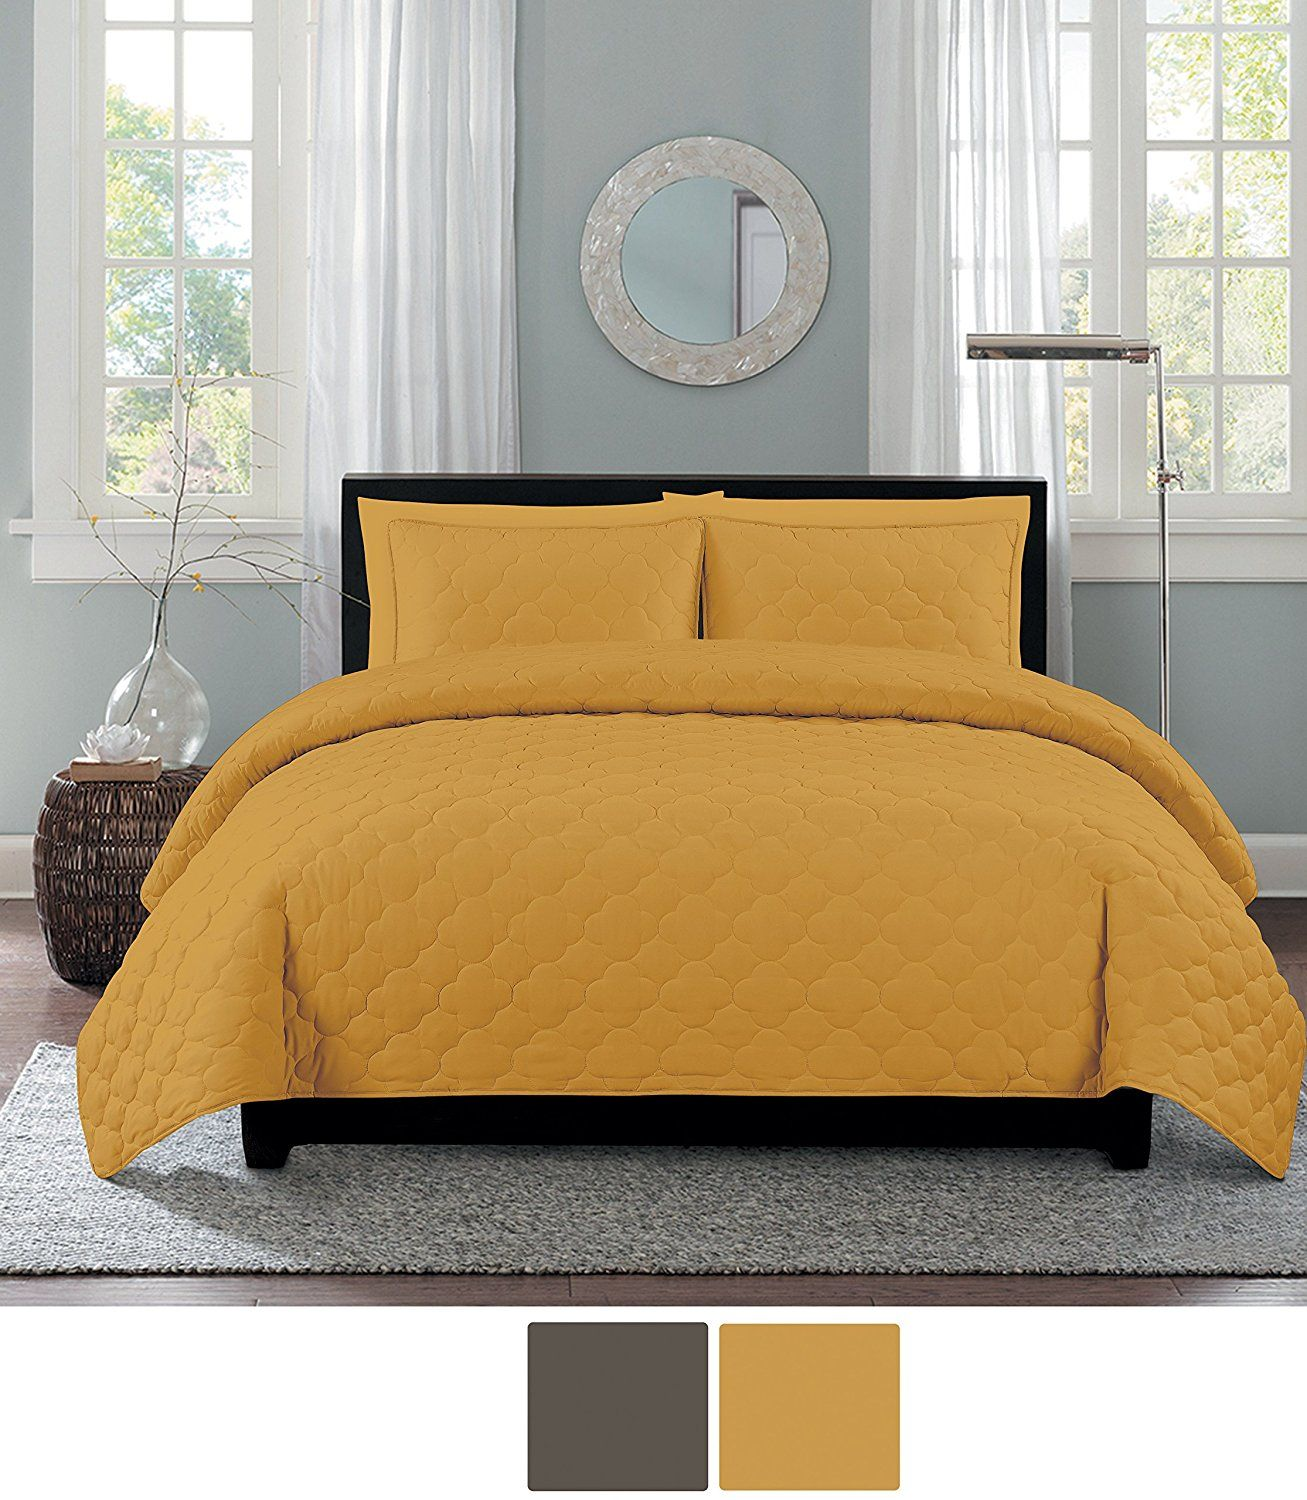 Mustard Yellow Bedding Pillow Covers & Curtains